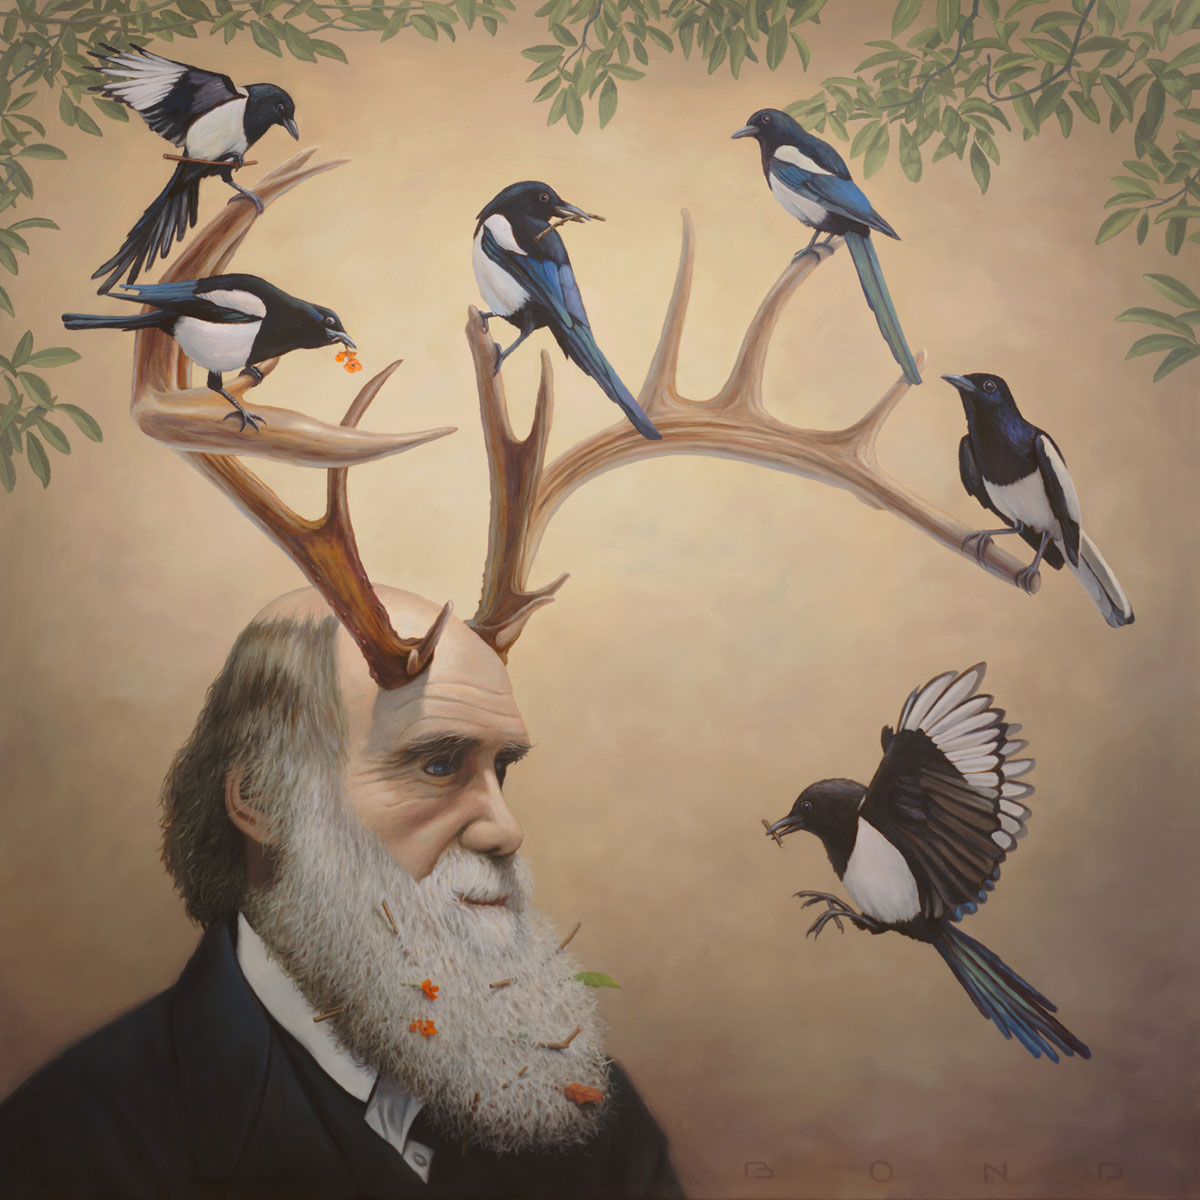 Charles Darwin in a Case of Natural Selections, painting of Charles Darwin with antlers, natural selection art, painting about theory evolution, art about ecology, painting meaning happiness positive joy, art with magpie, bird flying in the sky, art with horns, painting of man with beard, magic realism art of person with antlers, historical art, painting of birds, surreal art about climate change, painting with nature, peaceful art, painting of 1800's, soulful uplifting inspirational art, soul stirring illusion art, romantic art,  surrealism, surreal art, dreamlike imagery, fanciful art, fantasy art, dreamscape visual, metaphysical art, spiritual painting, metaphysical painting, spiritual art, whimsical art, whimsy art, dream art, fantastic realism art, limited edition giclee, signed art print, fine art reproduction, original magic realism oil painting by Paul Bond